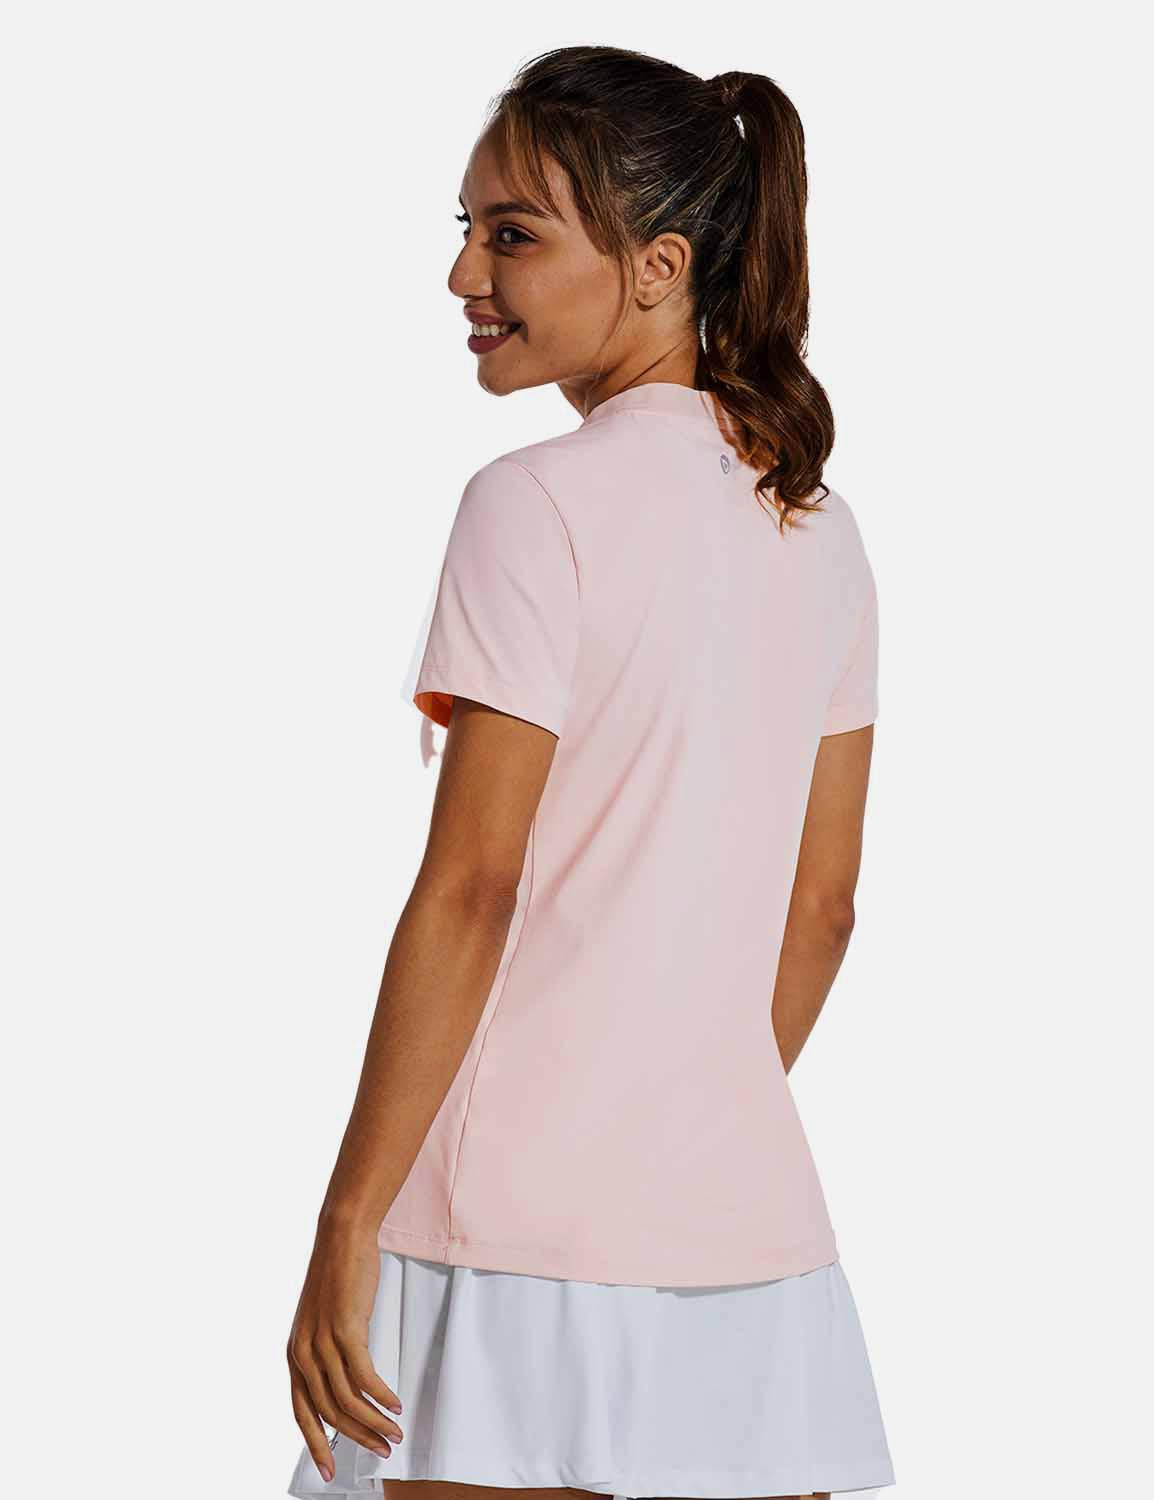 Baleaf Womens UPF50+ Short Sleeved Collarless V Neck Shirts Pink back